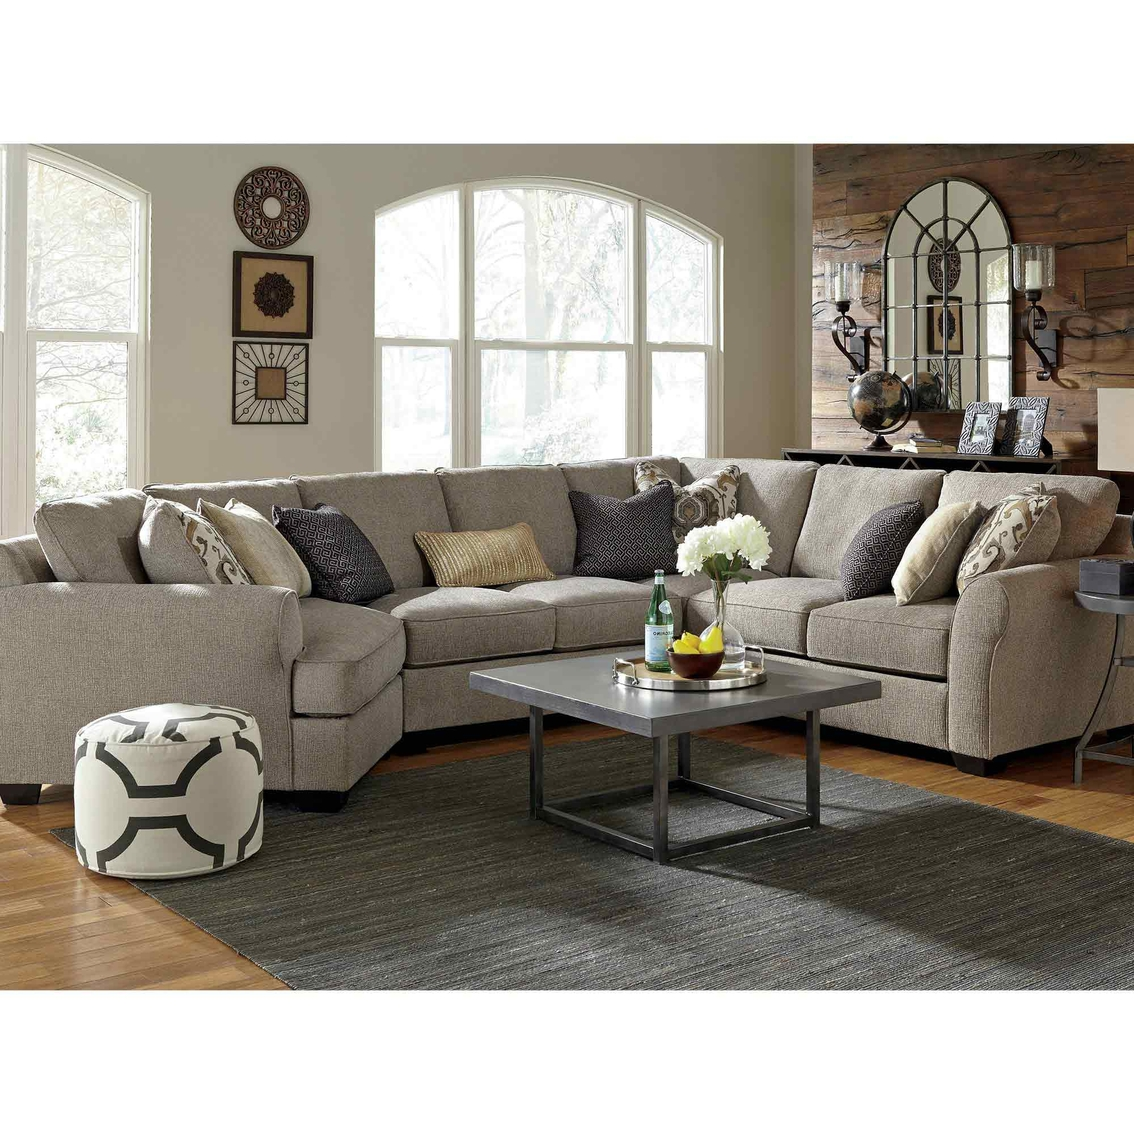 Couches 4 Benchcraft Pantomine 4 Pc Sectional Laf Cuddler Wedge Armless And